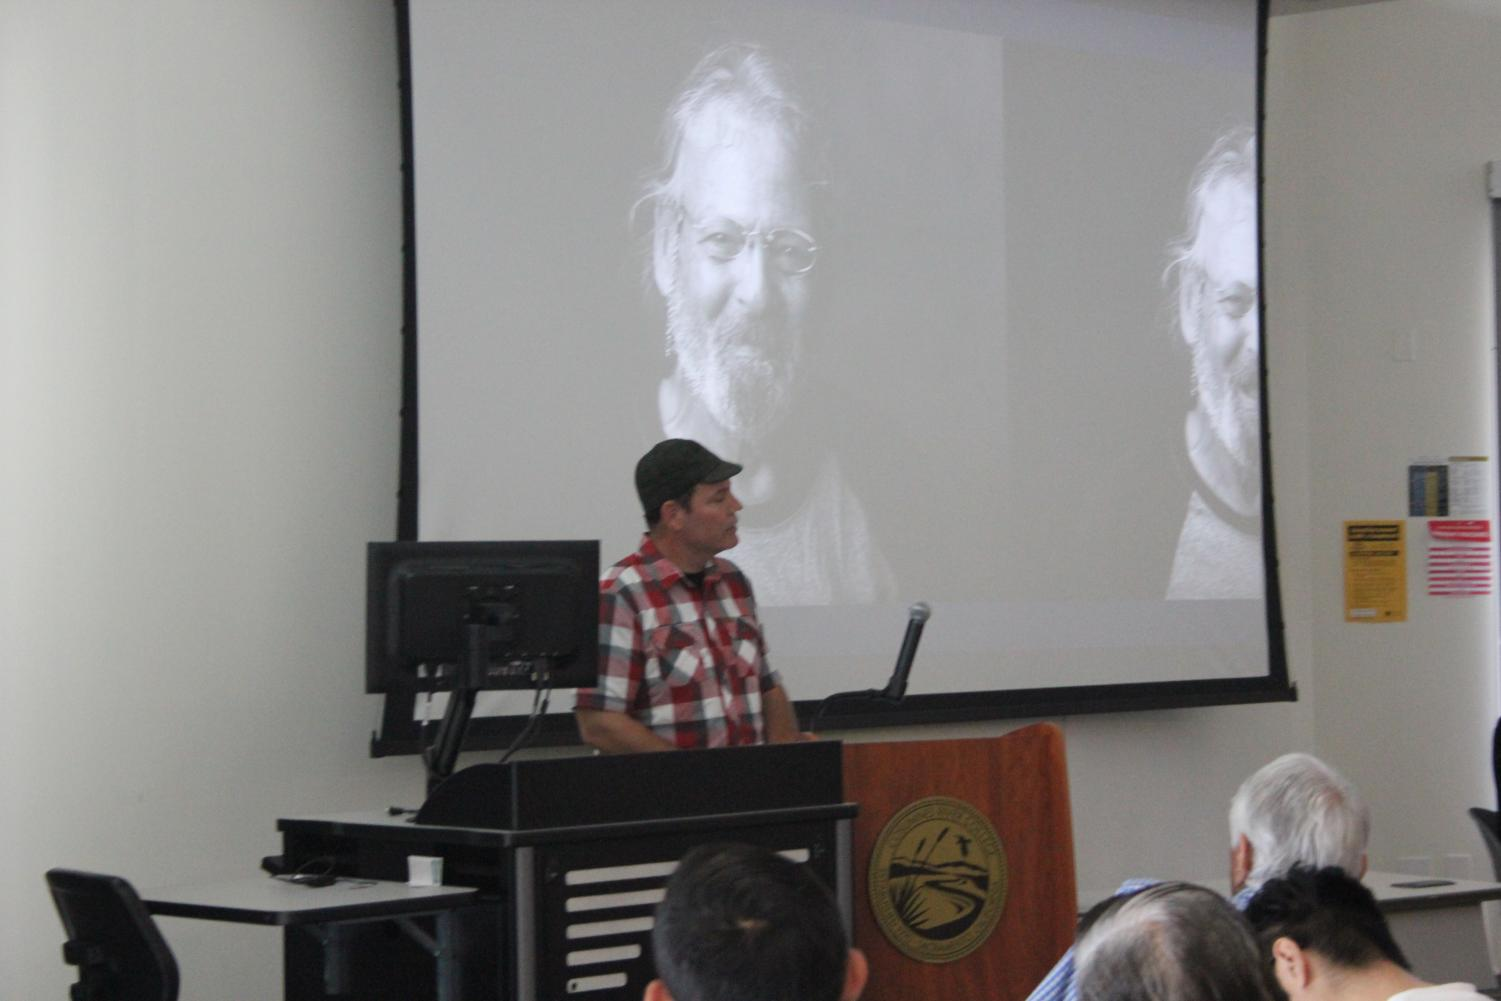 CRC student Doug Winter gives a speech about homeless people's lives to a crowd of people in the WINN Center.